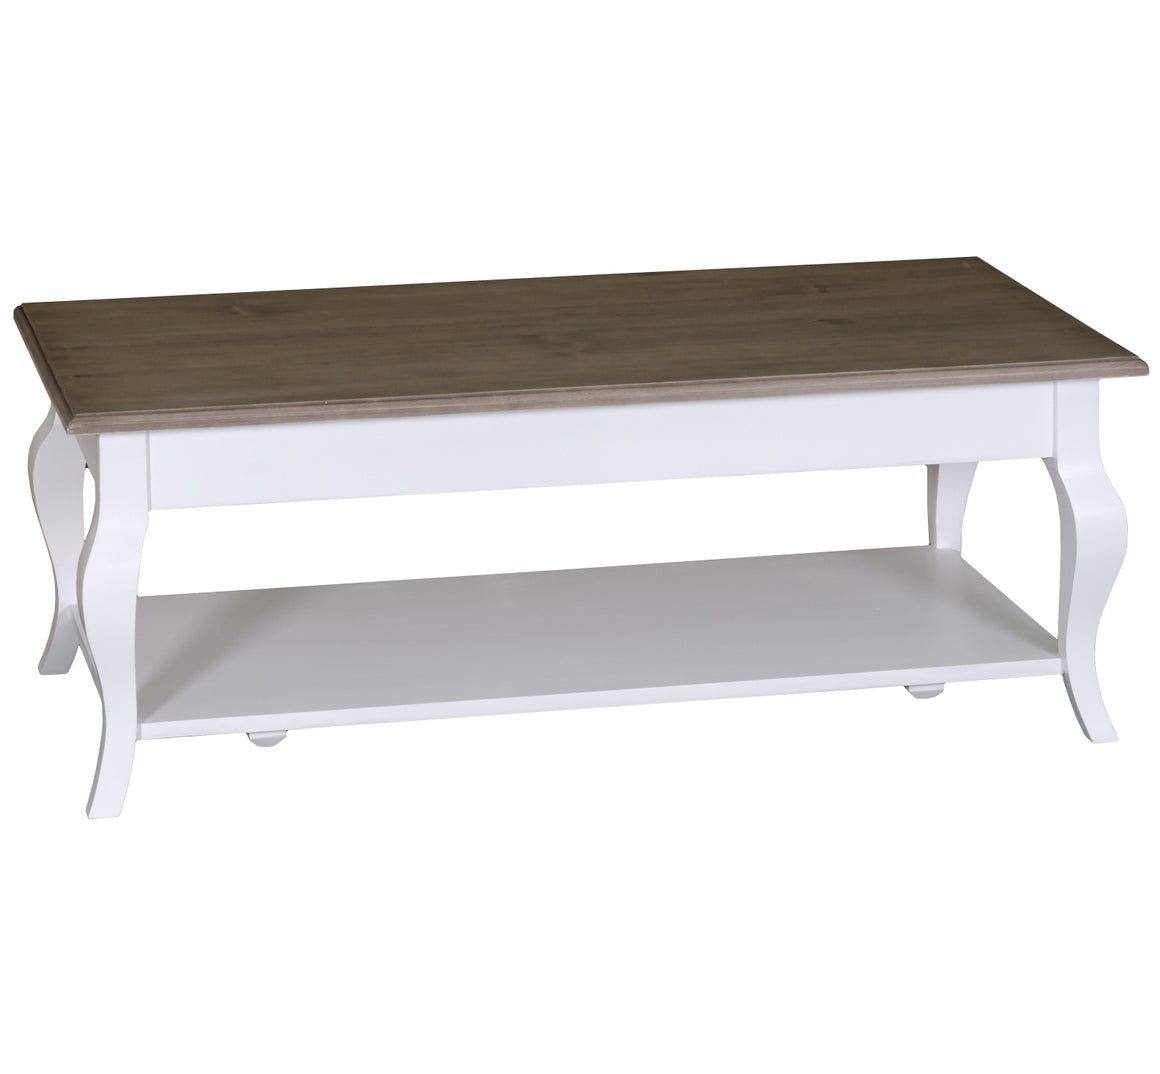 Chelsea Cabriole Leg Coffee Table with Pot Board